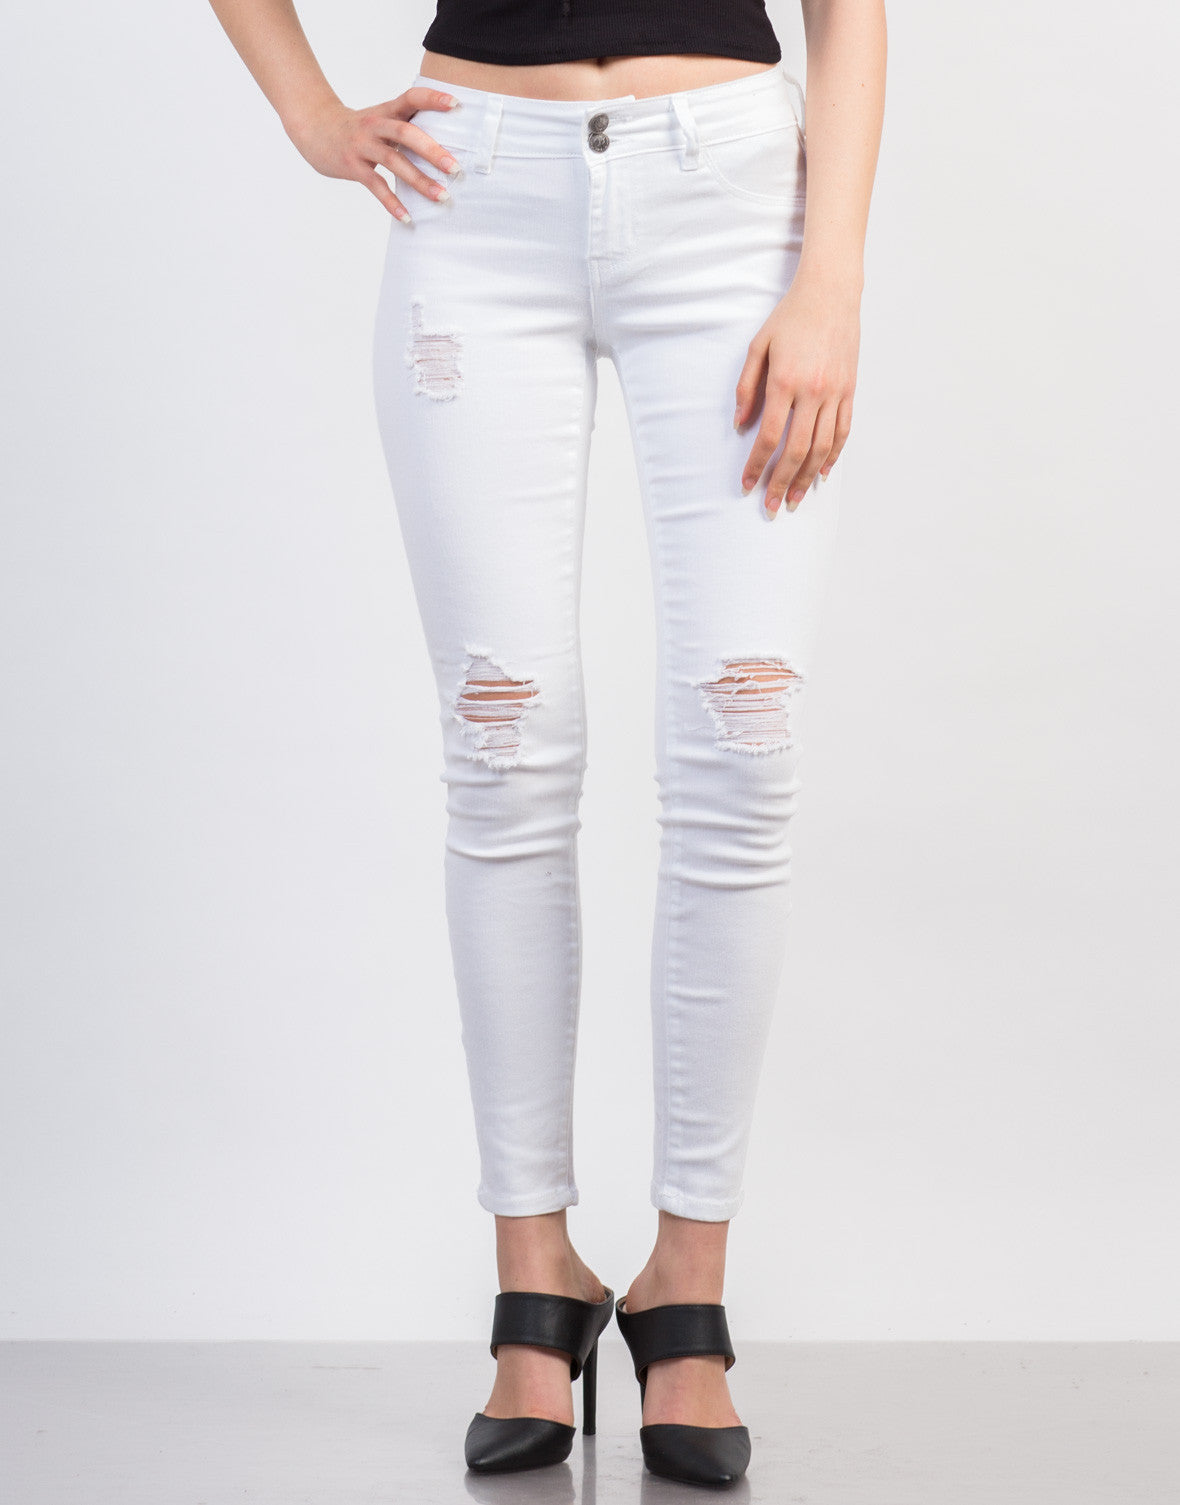 af3070b240b Slightly Distressed White Skinny Jeans - Ripped Knee White Jeans ...